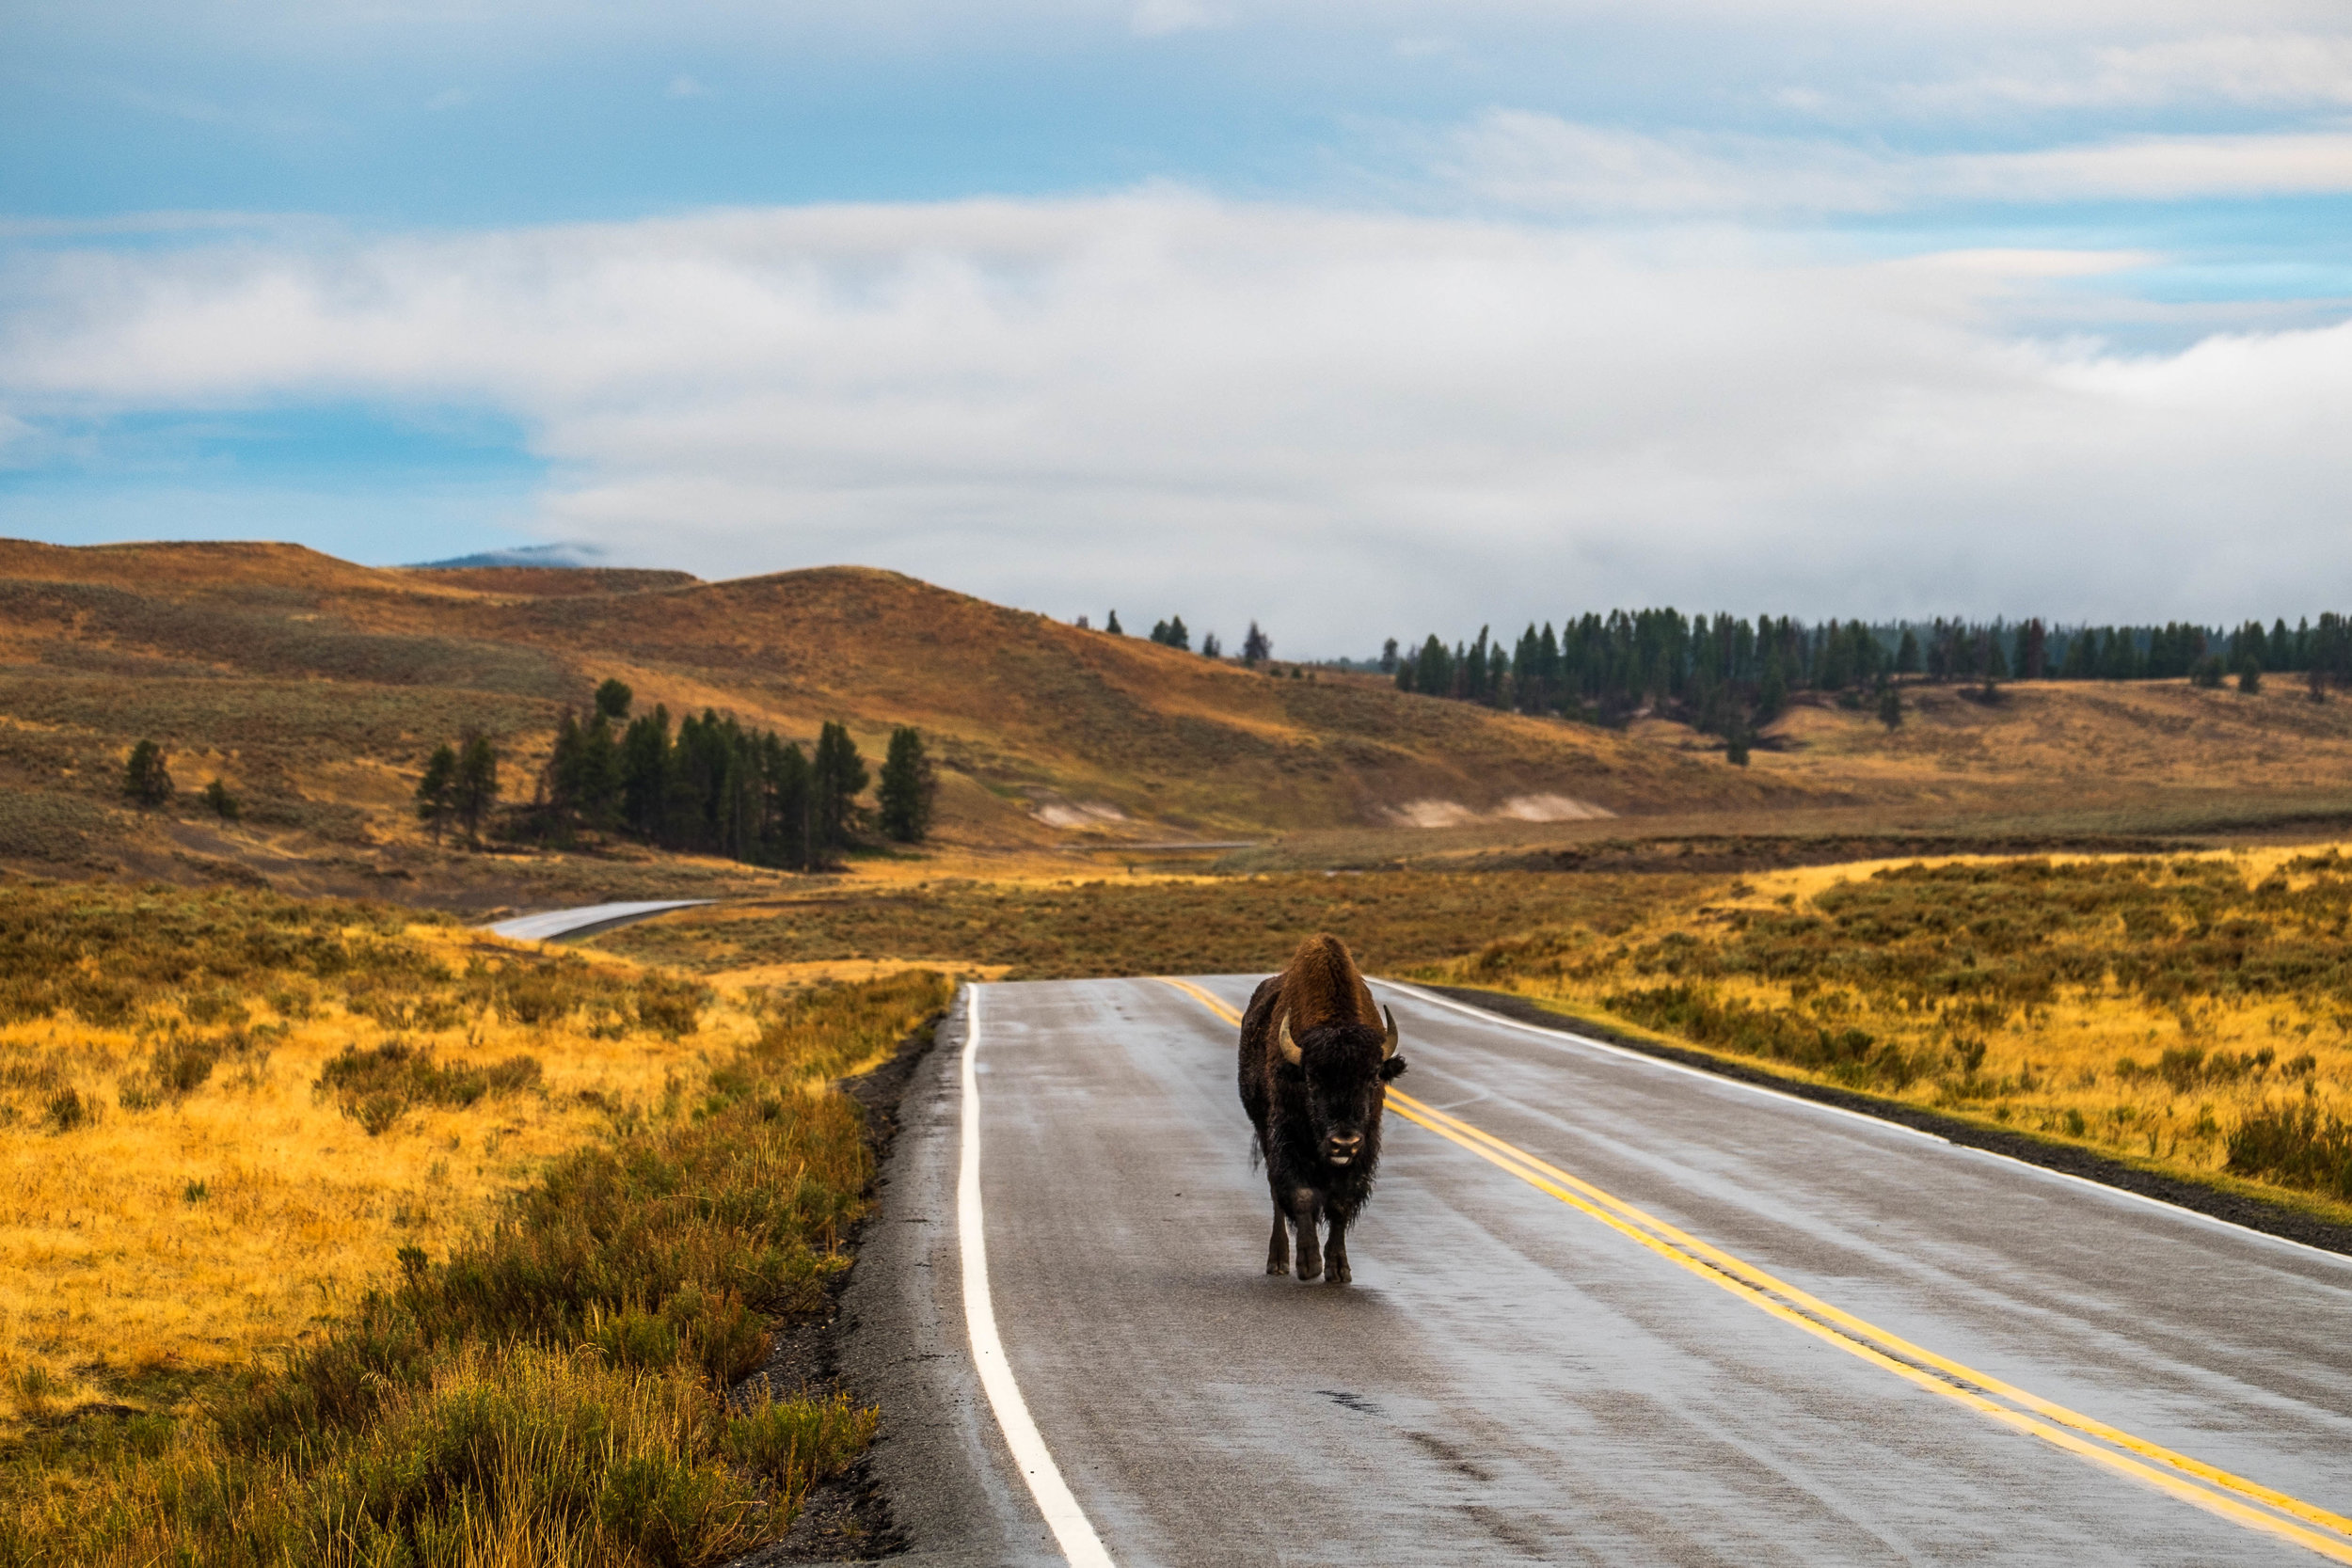 A bison pretending to be a car. Yes, they do own the roads in Yellowstone.